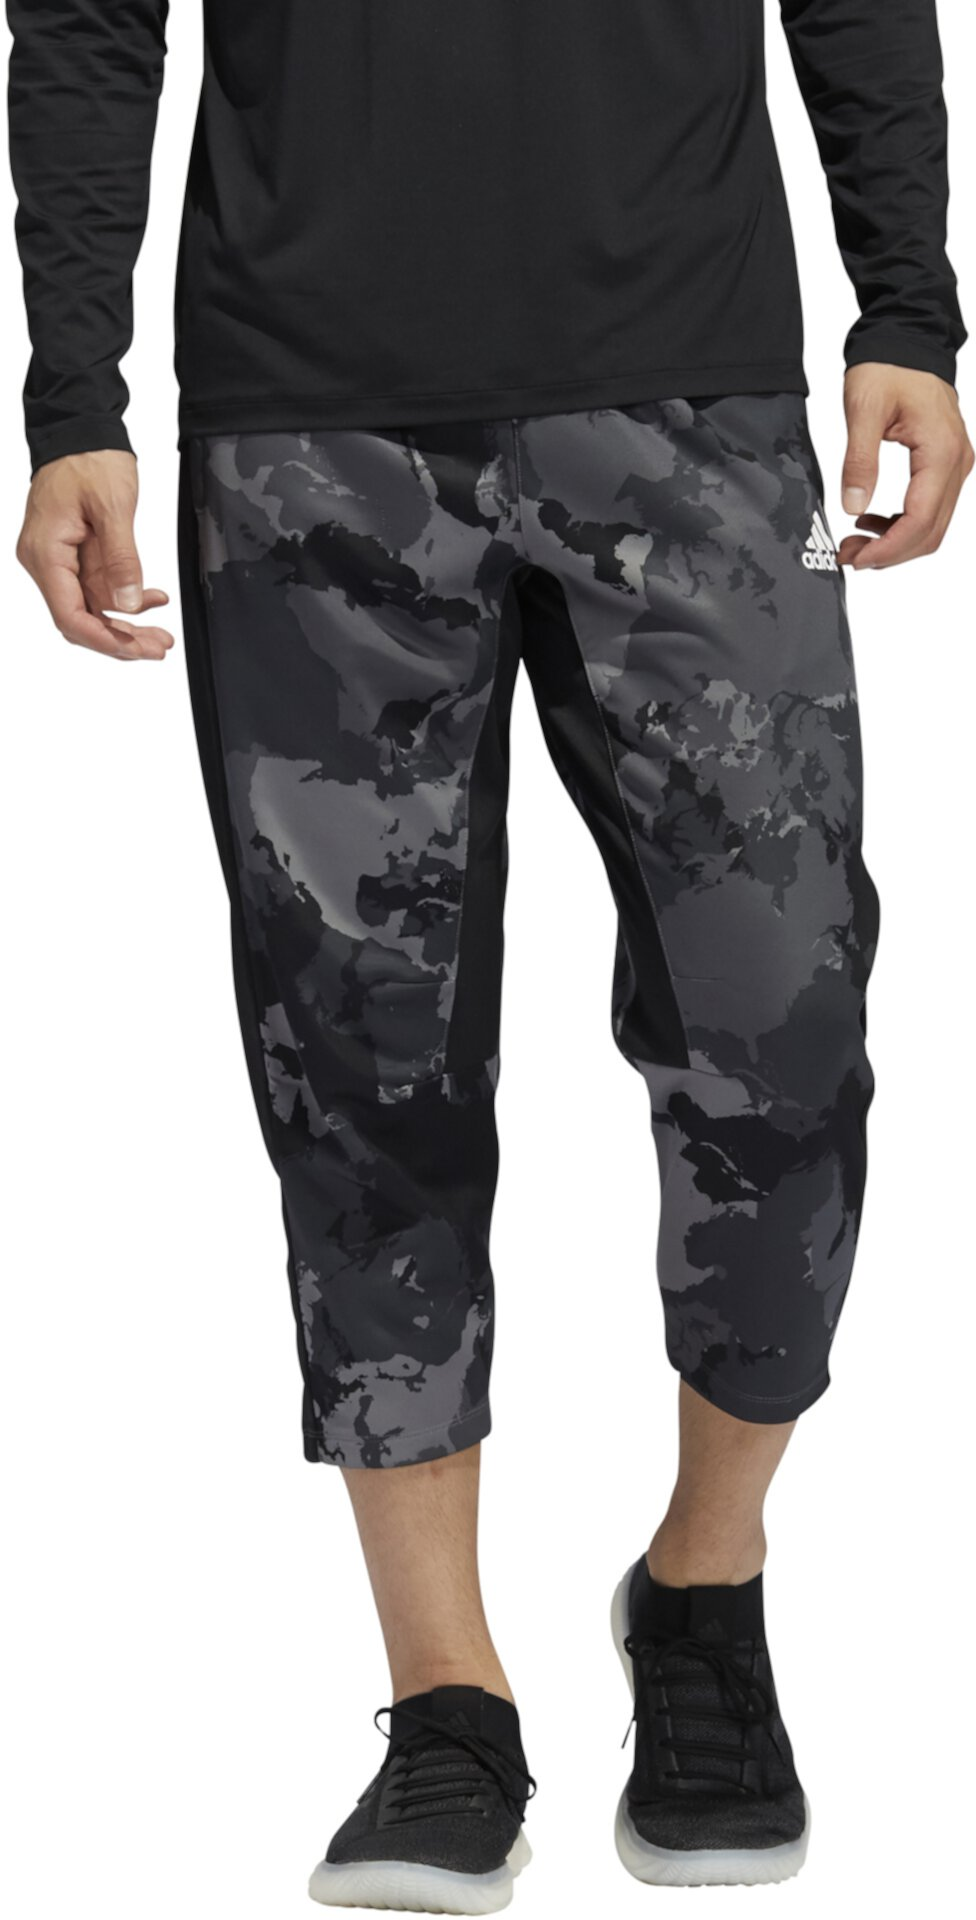 Continent Camo City Cropped Pants Adidas